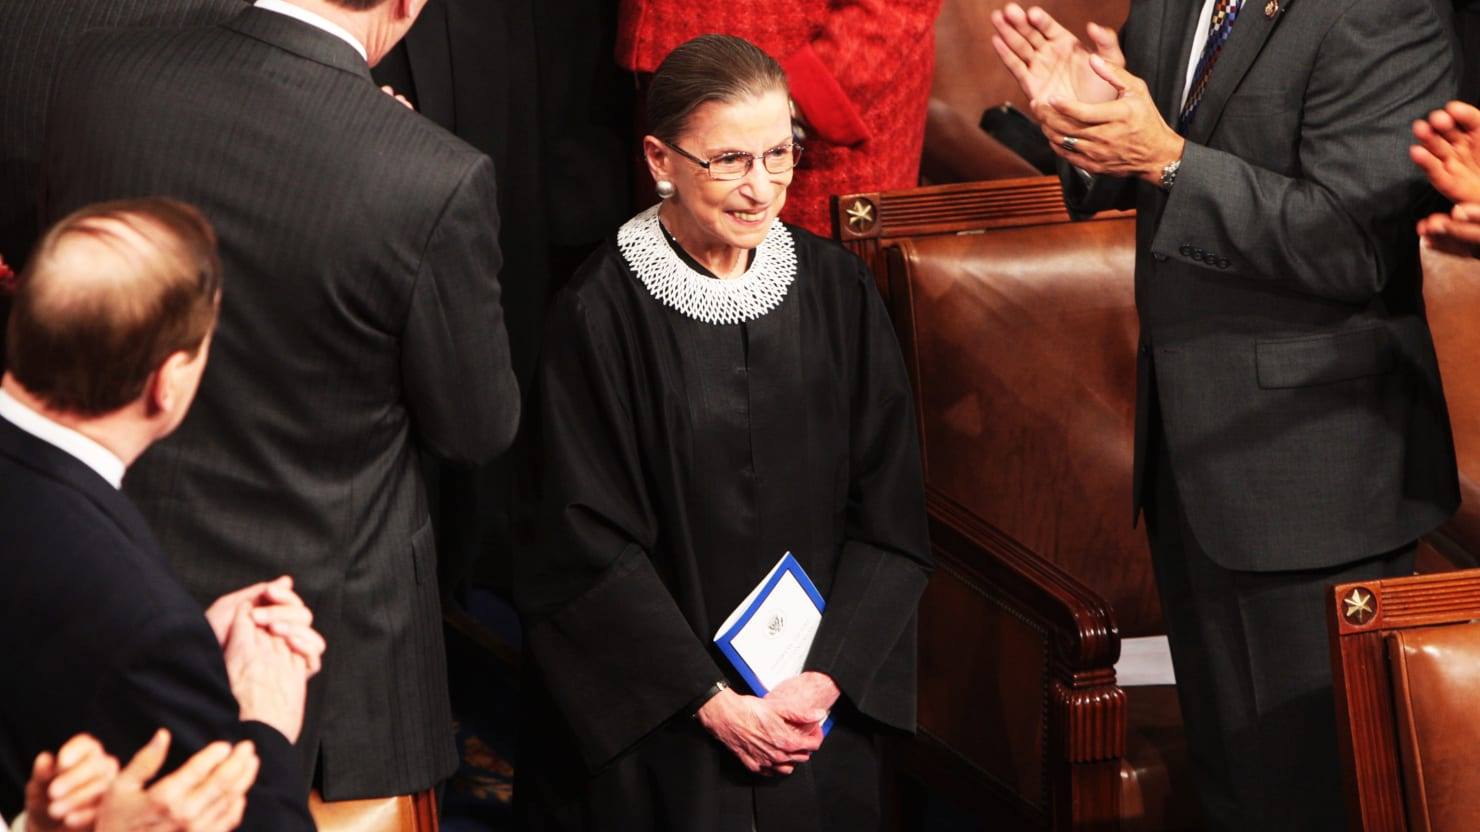 Ruth Bader Ginsburg's Incredible Life Goal: 'Repair Tears' in Our Society